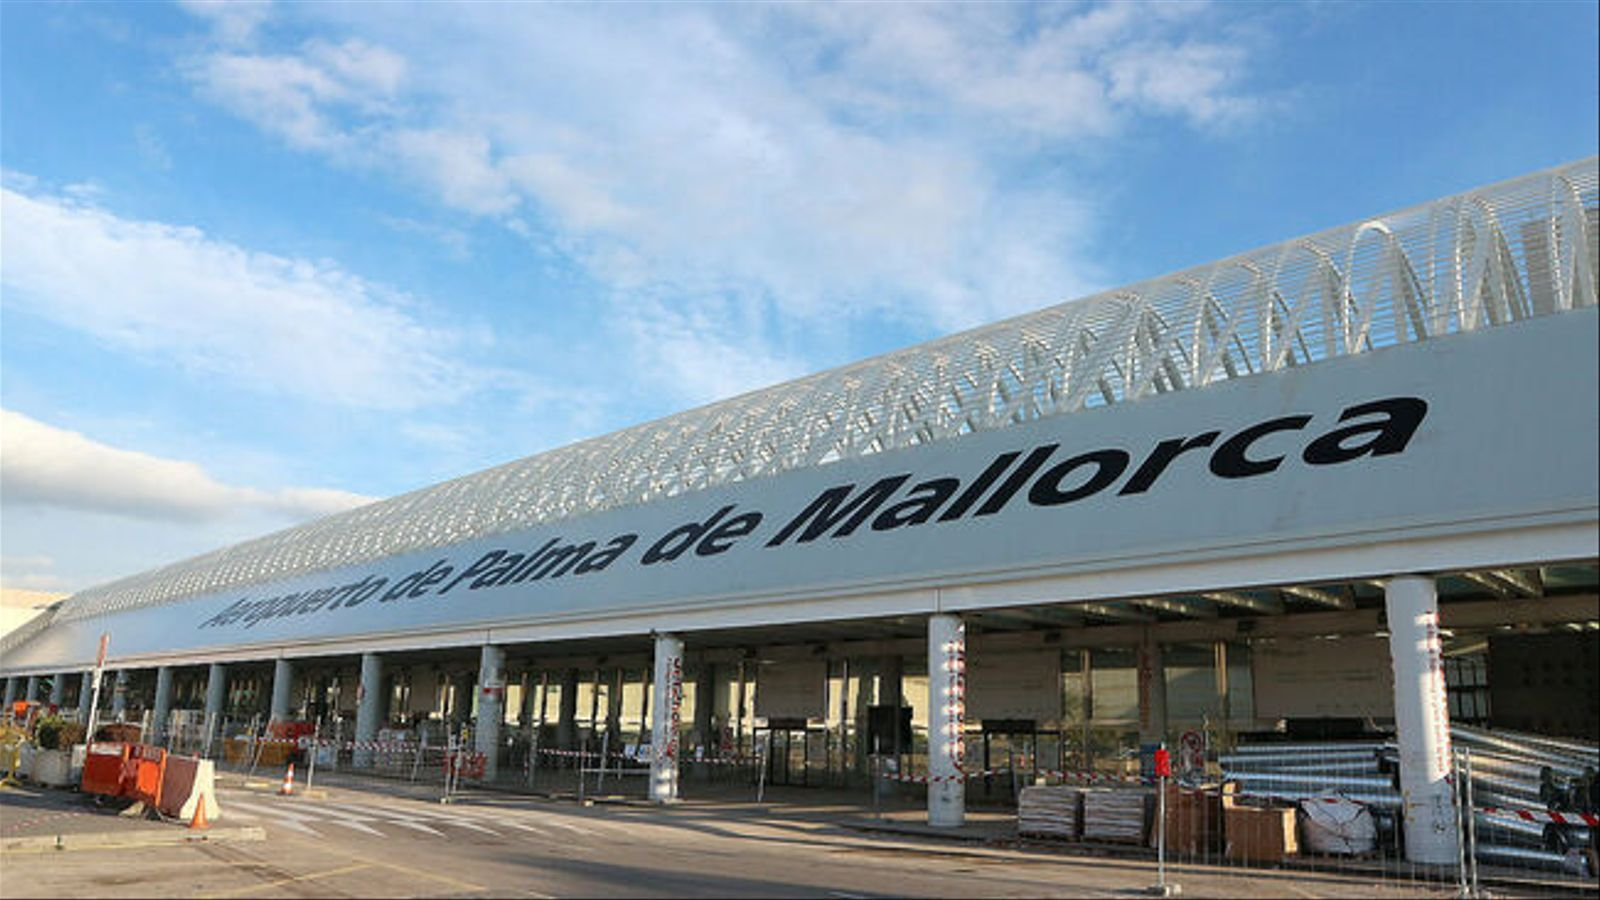 L'aeroport de Son Sant Joan.